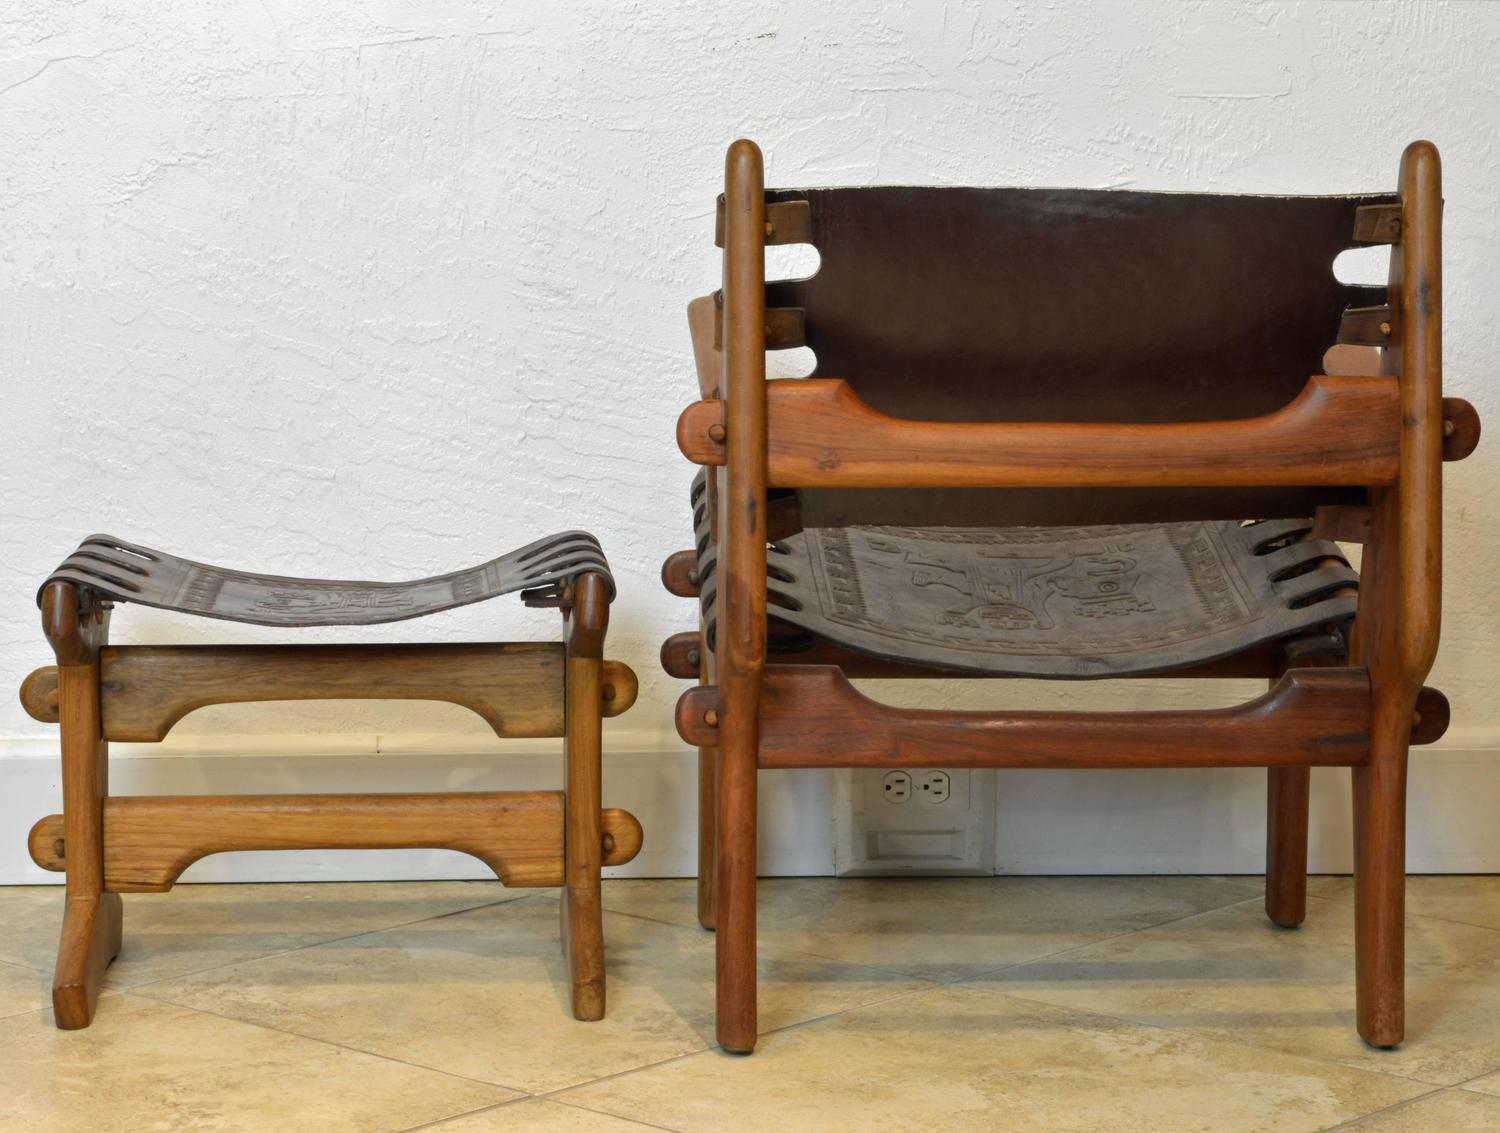 Mid Century Modern Wood and Leather Chair and Footstool by